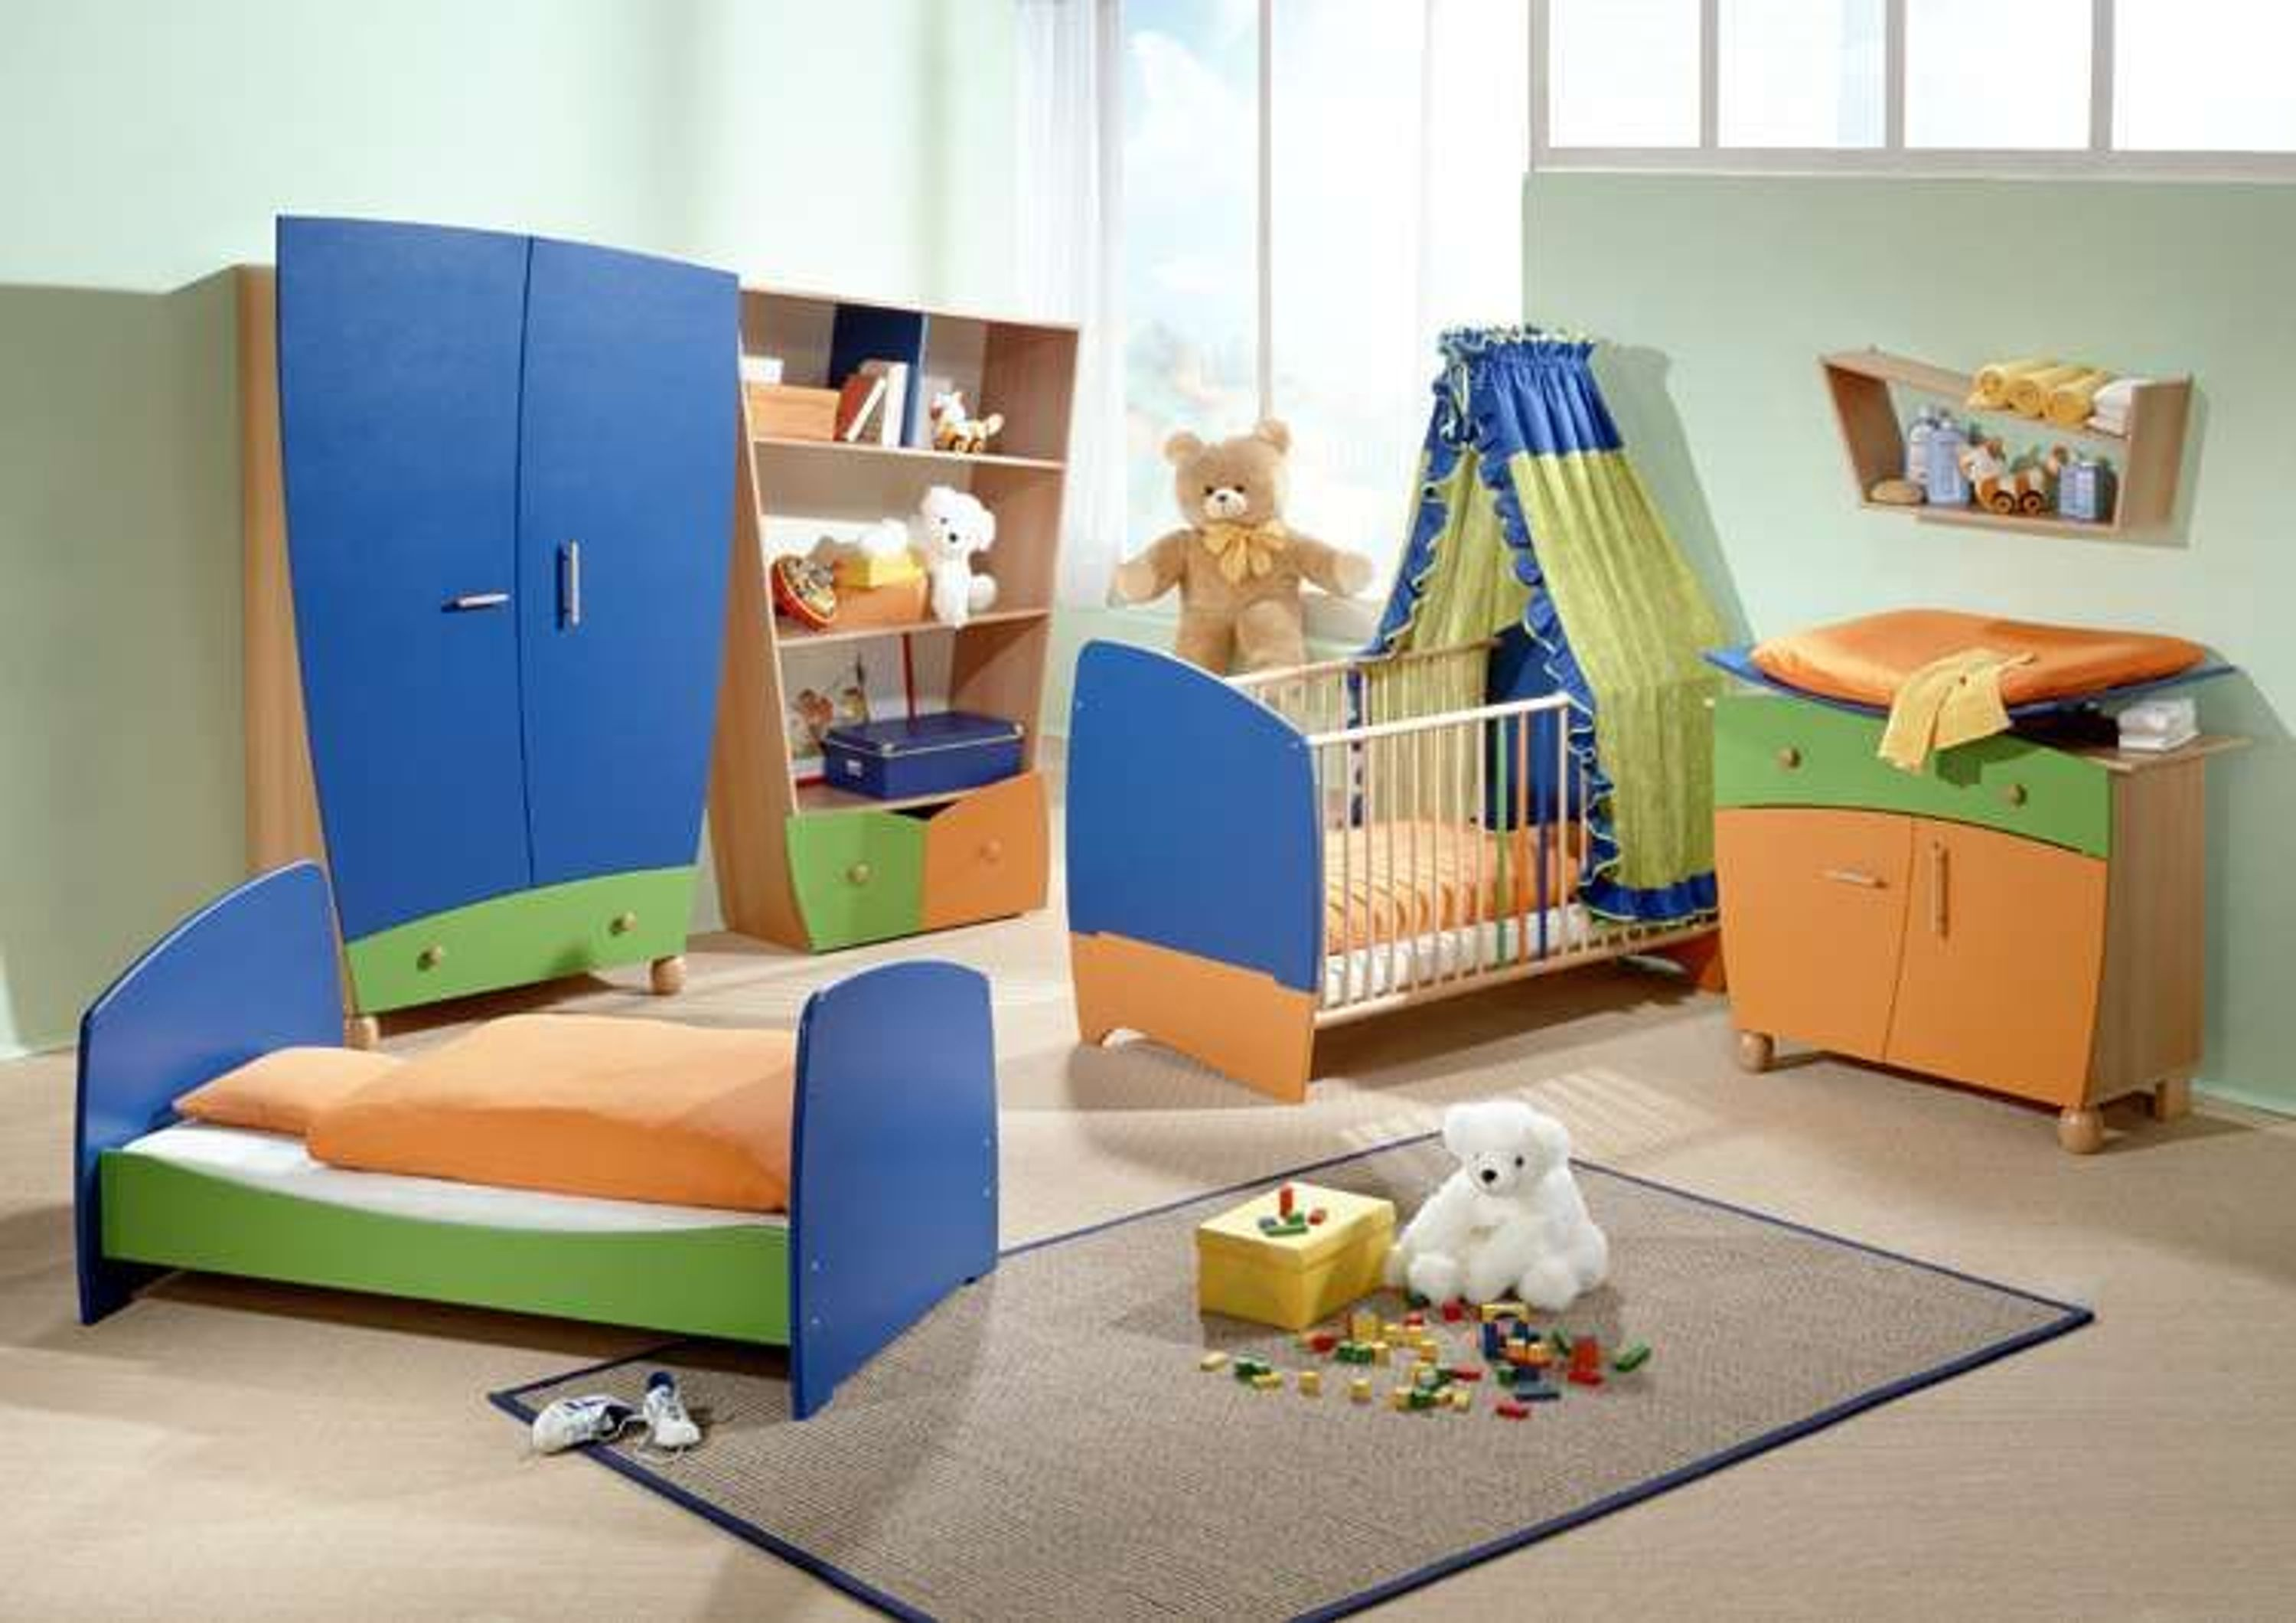 taube kinderzimmer babyzimmer fantasia bunt bett kommode schrank kaufen bei. Black Bedroom Furniture Sets. Home Design Ideas